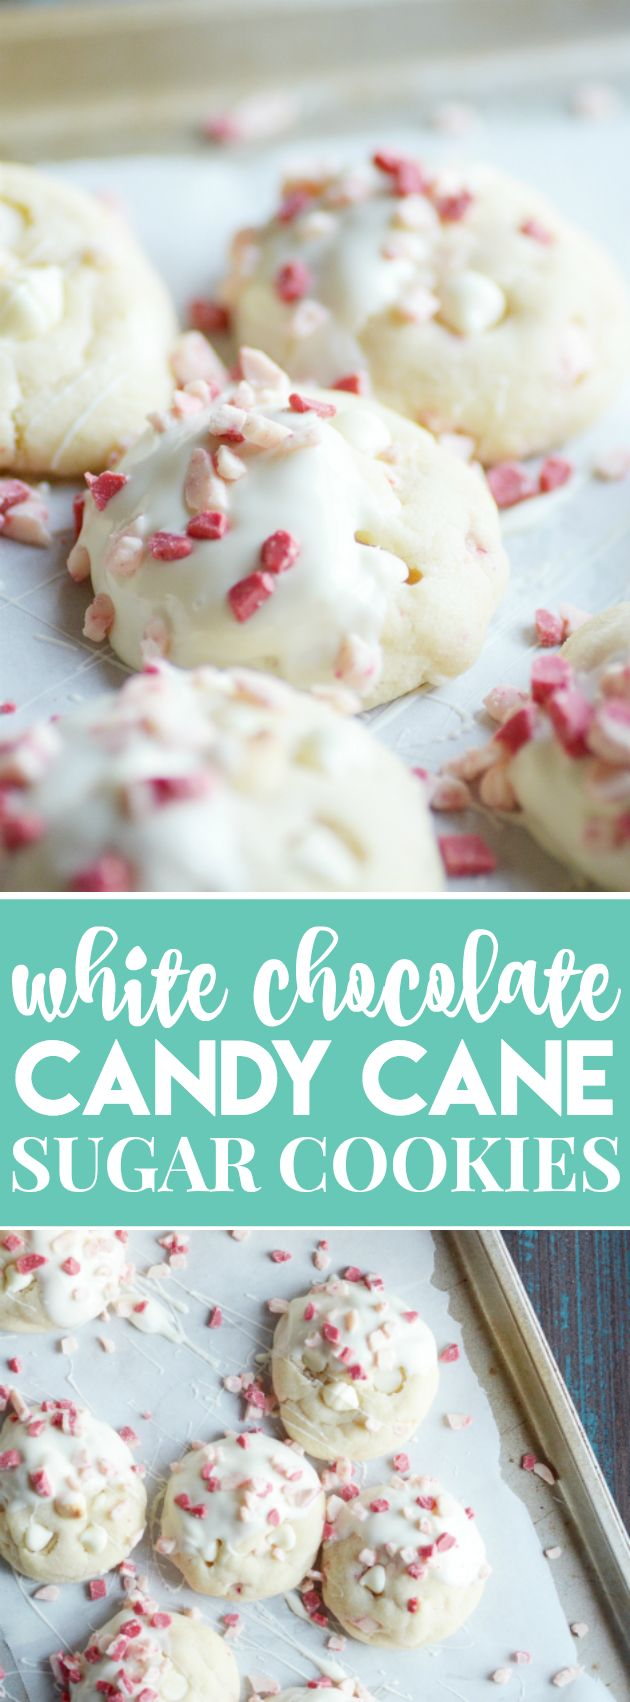 White Chocolate Candy Cane Sugar Cookies | Something Swanky | Soft sugar cookies dipped in white chocolate and peppermint bits